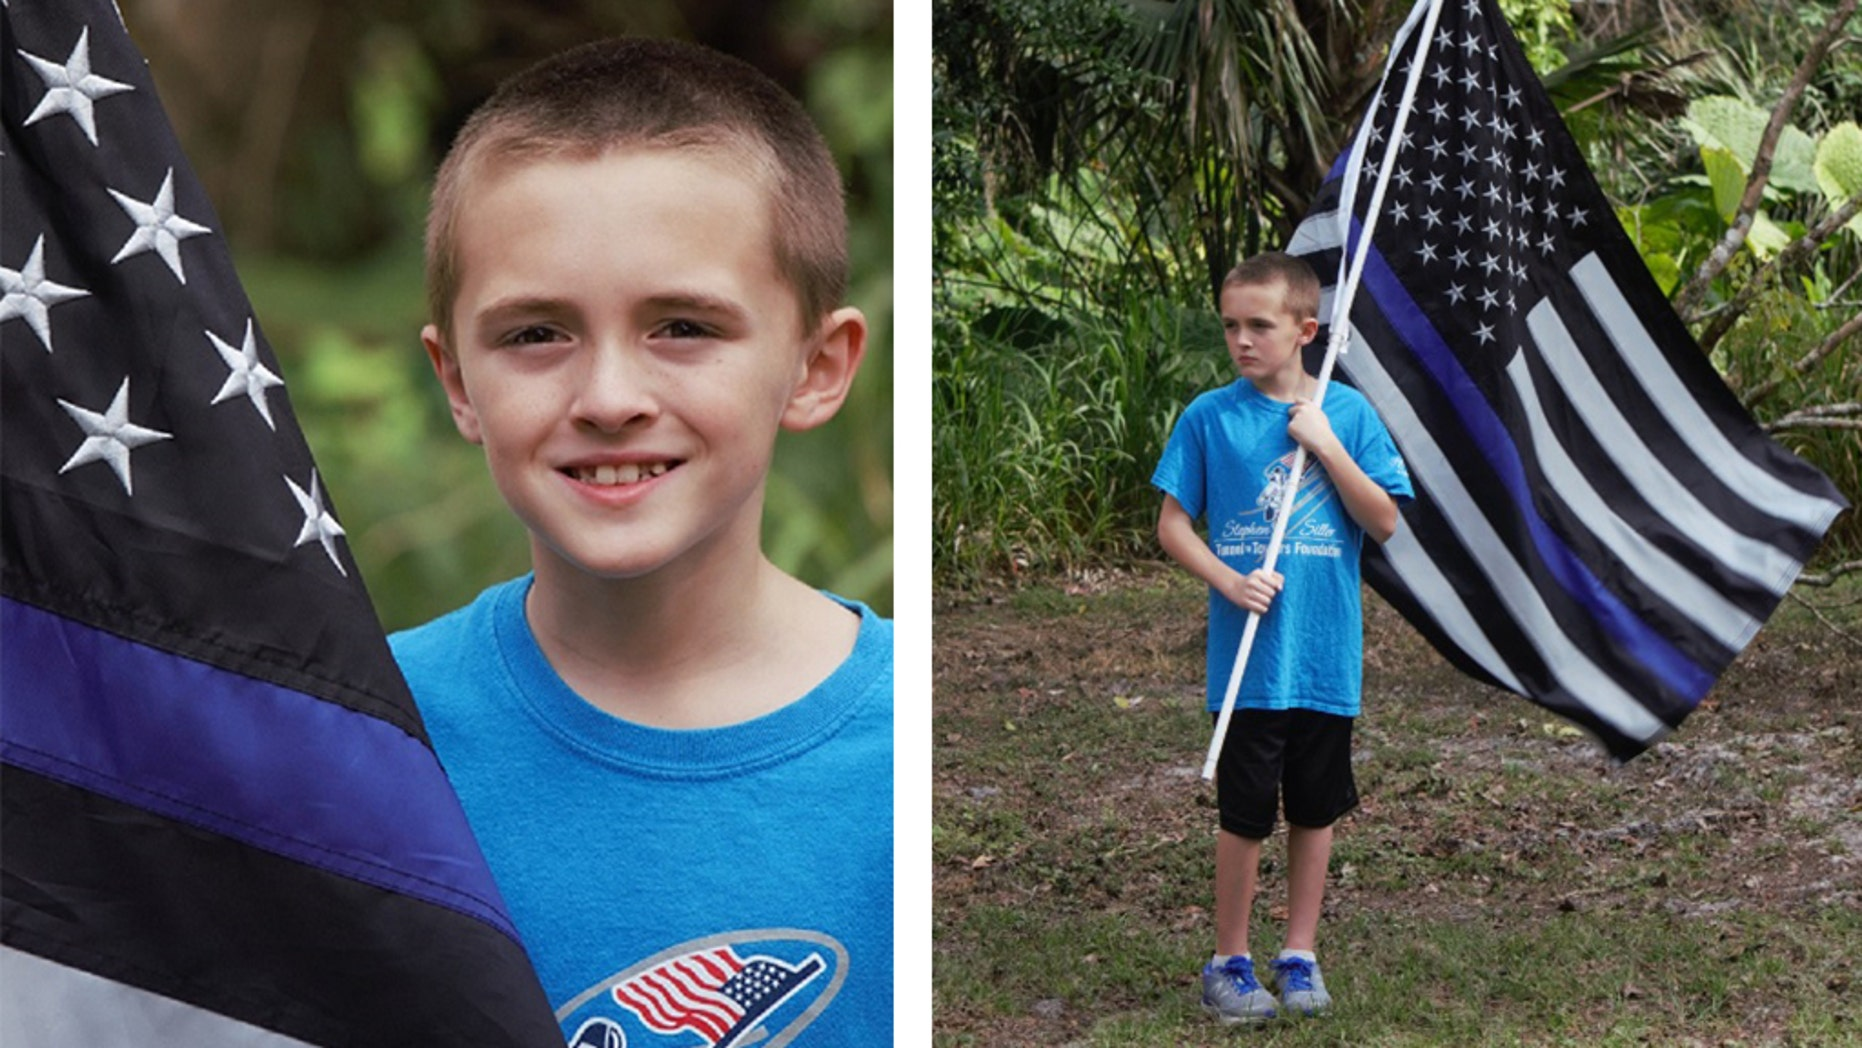 A 10-year-old boy in Florida has reportedly found his own way to pay homage to fallen law enforcement officers – by running a mile for them.